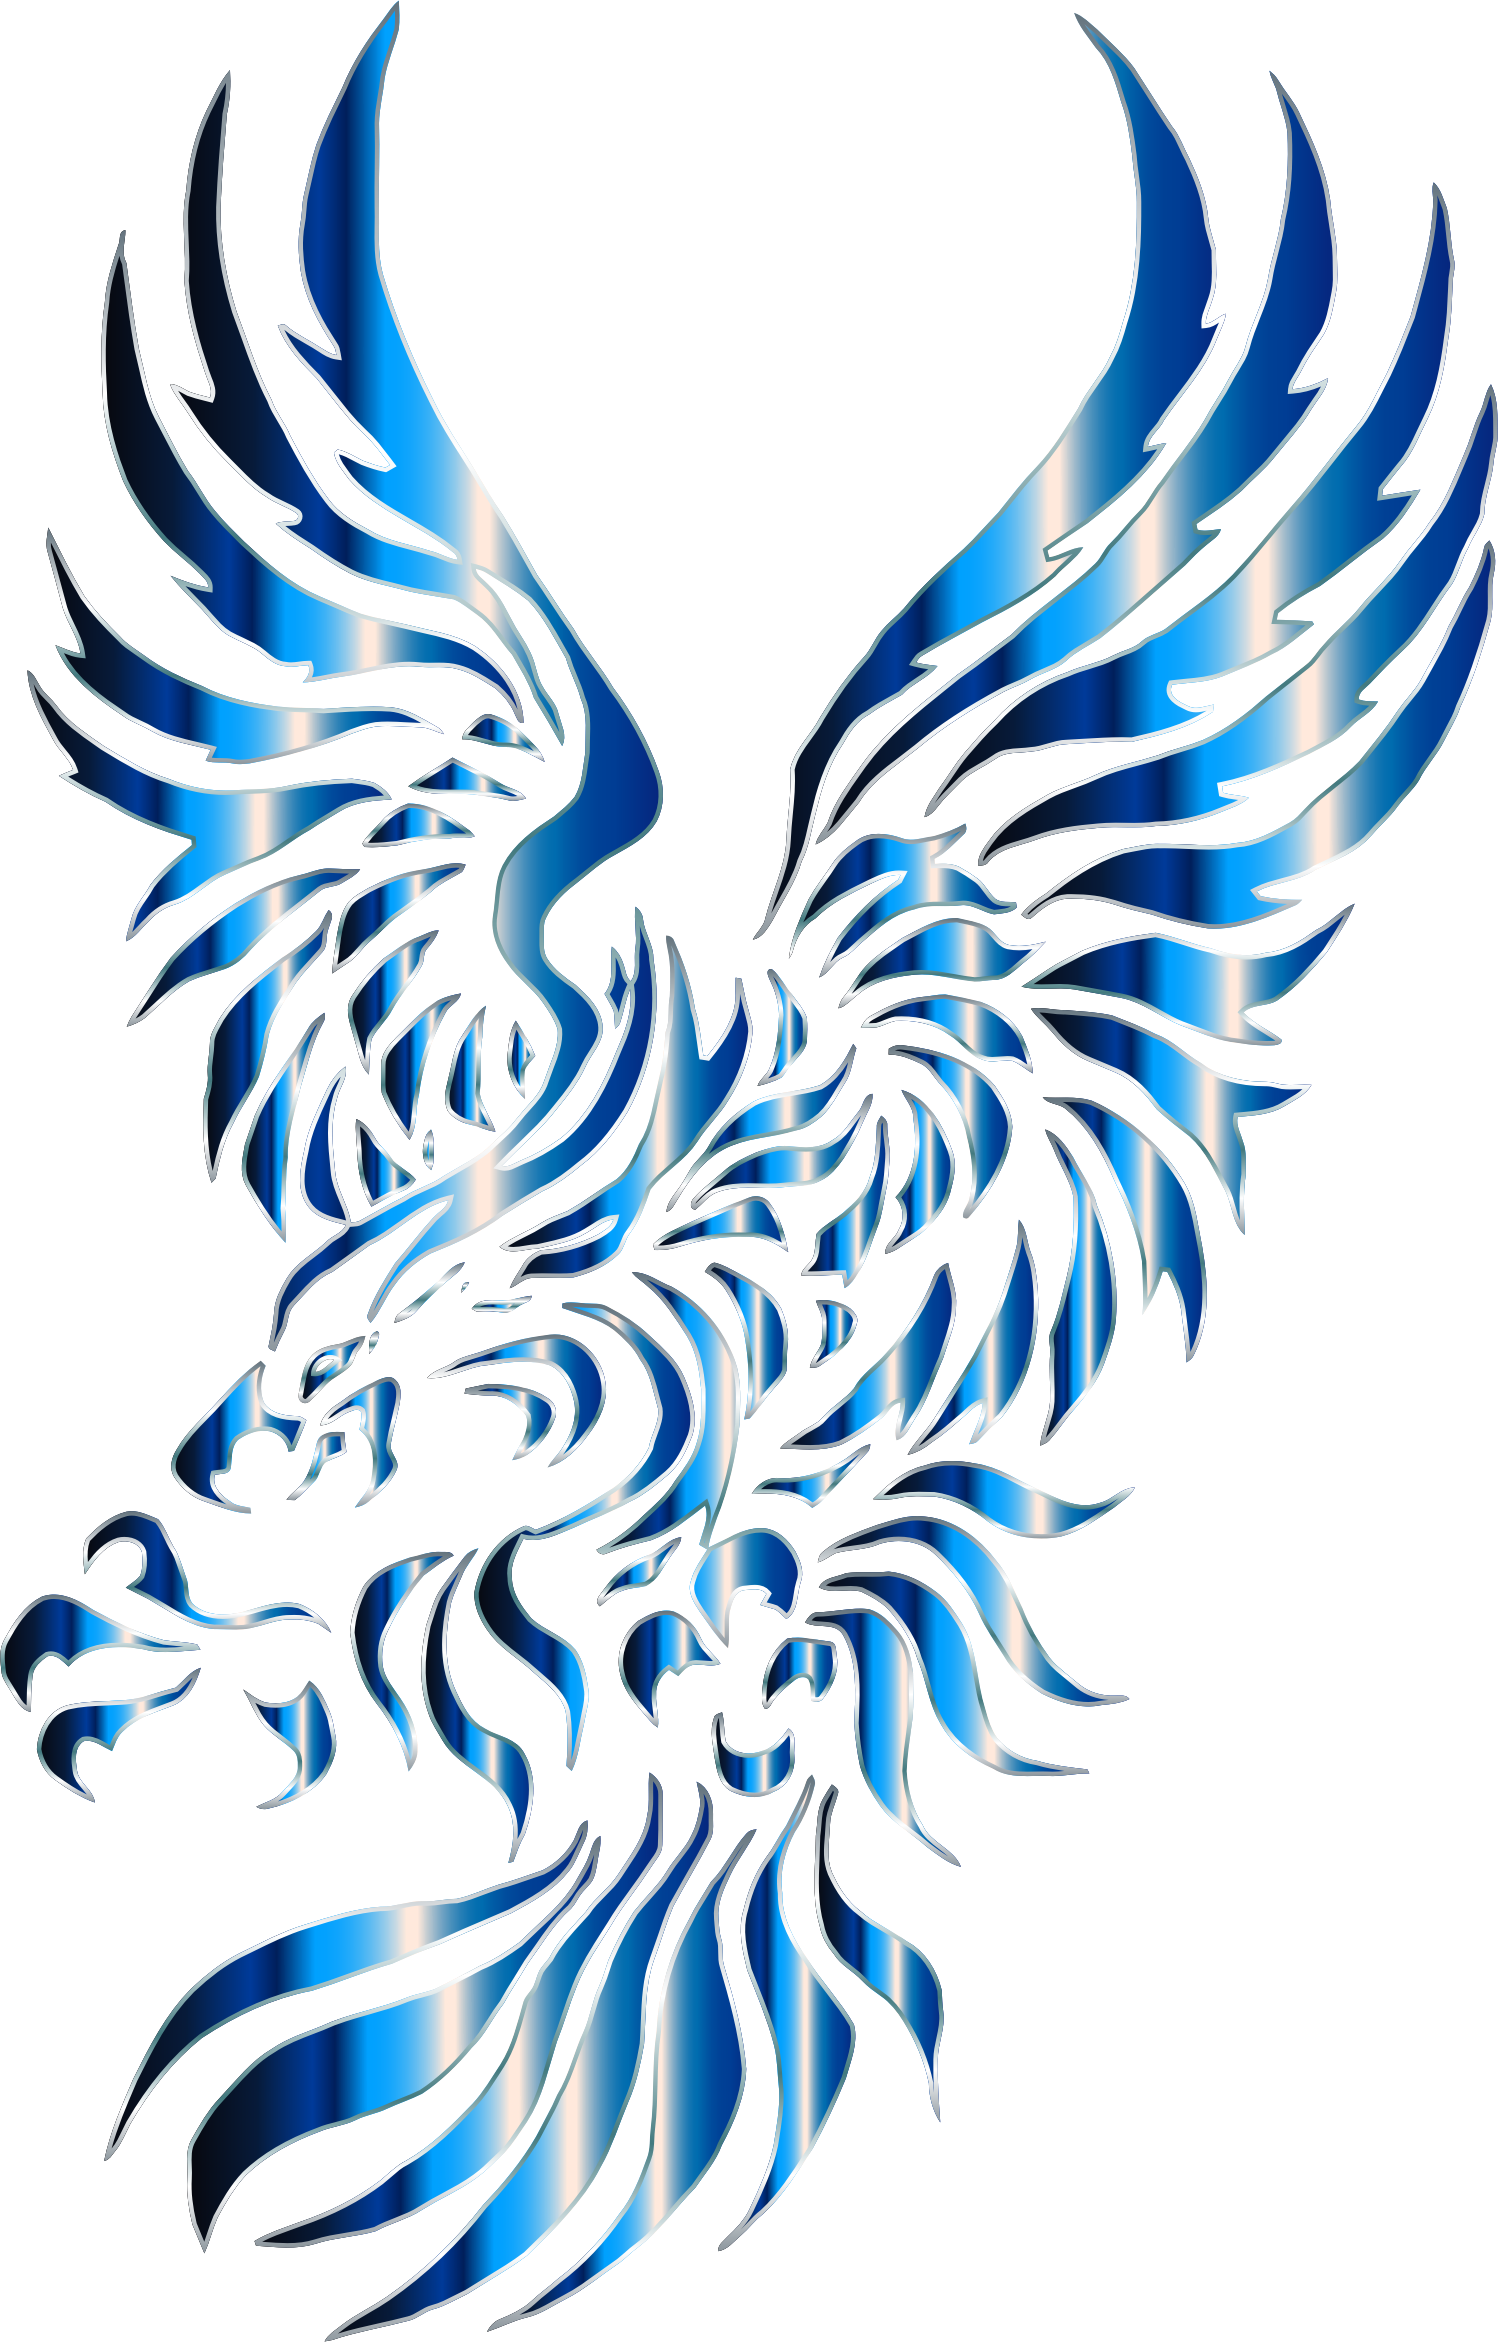 Chromatic Tribal Eagle 2 7 No Background by GDJ